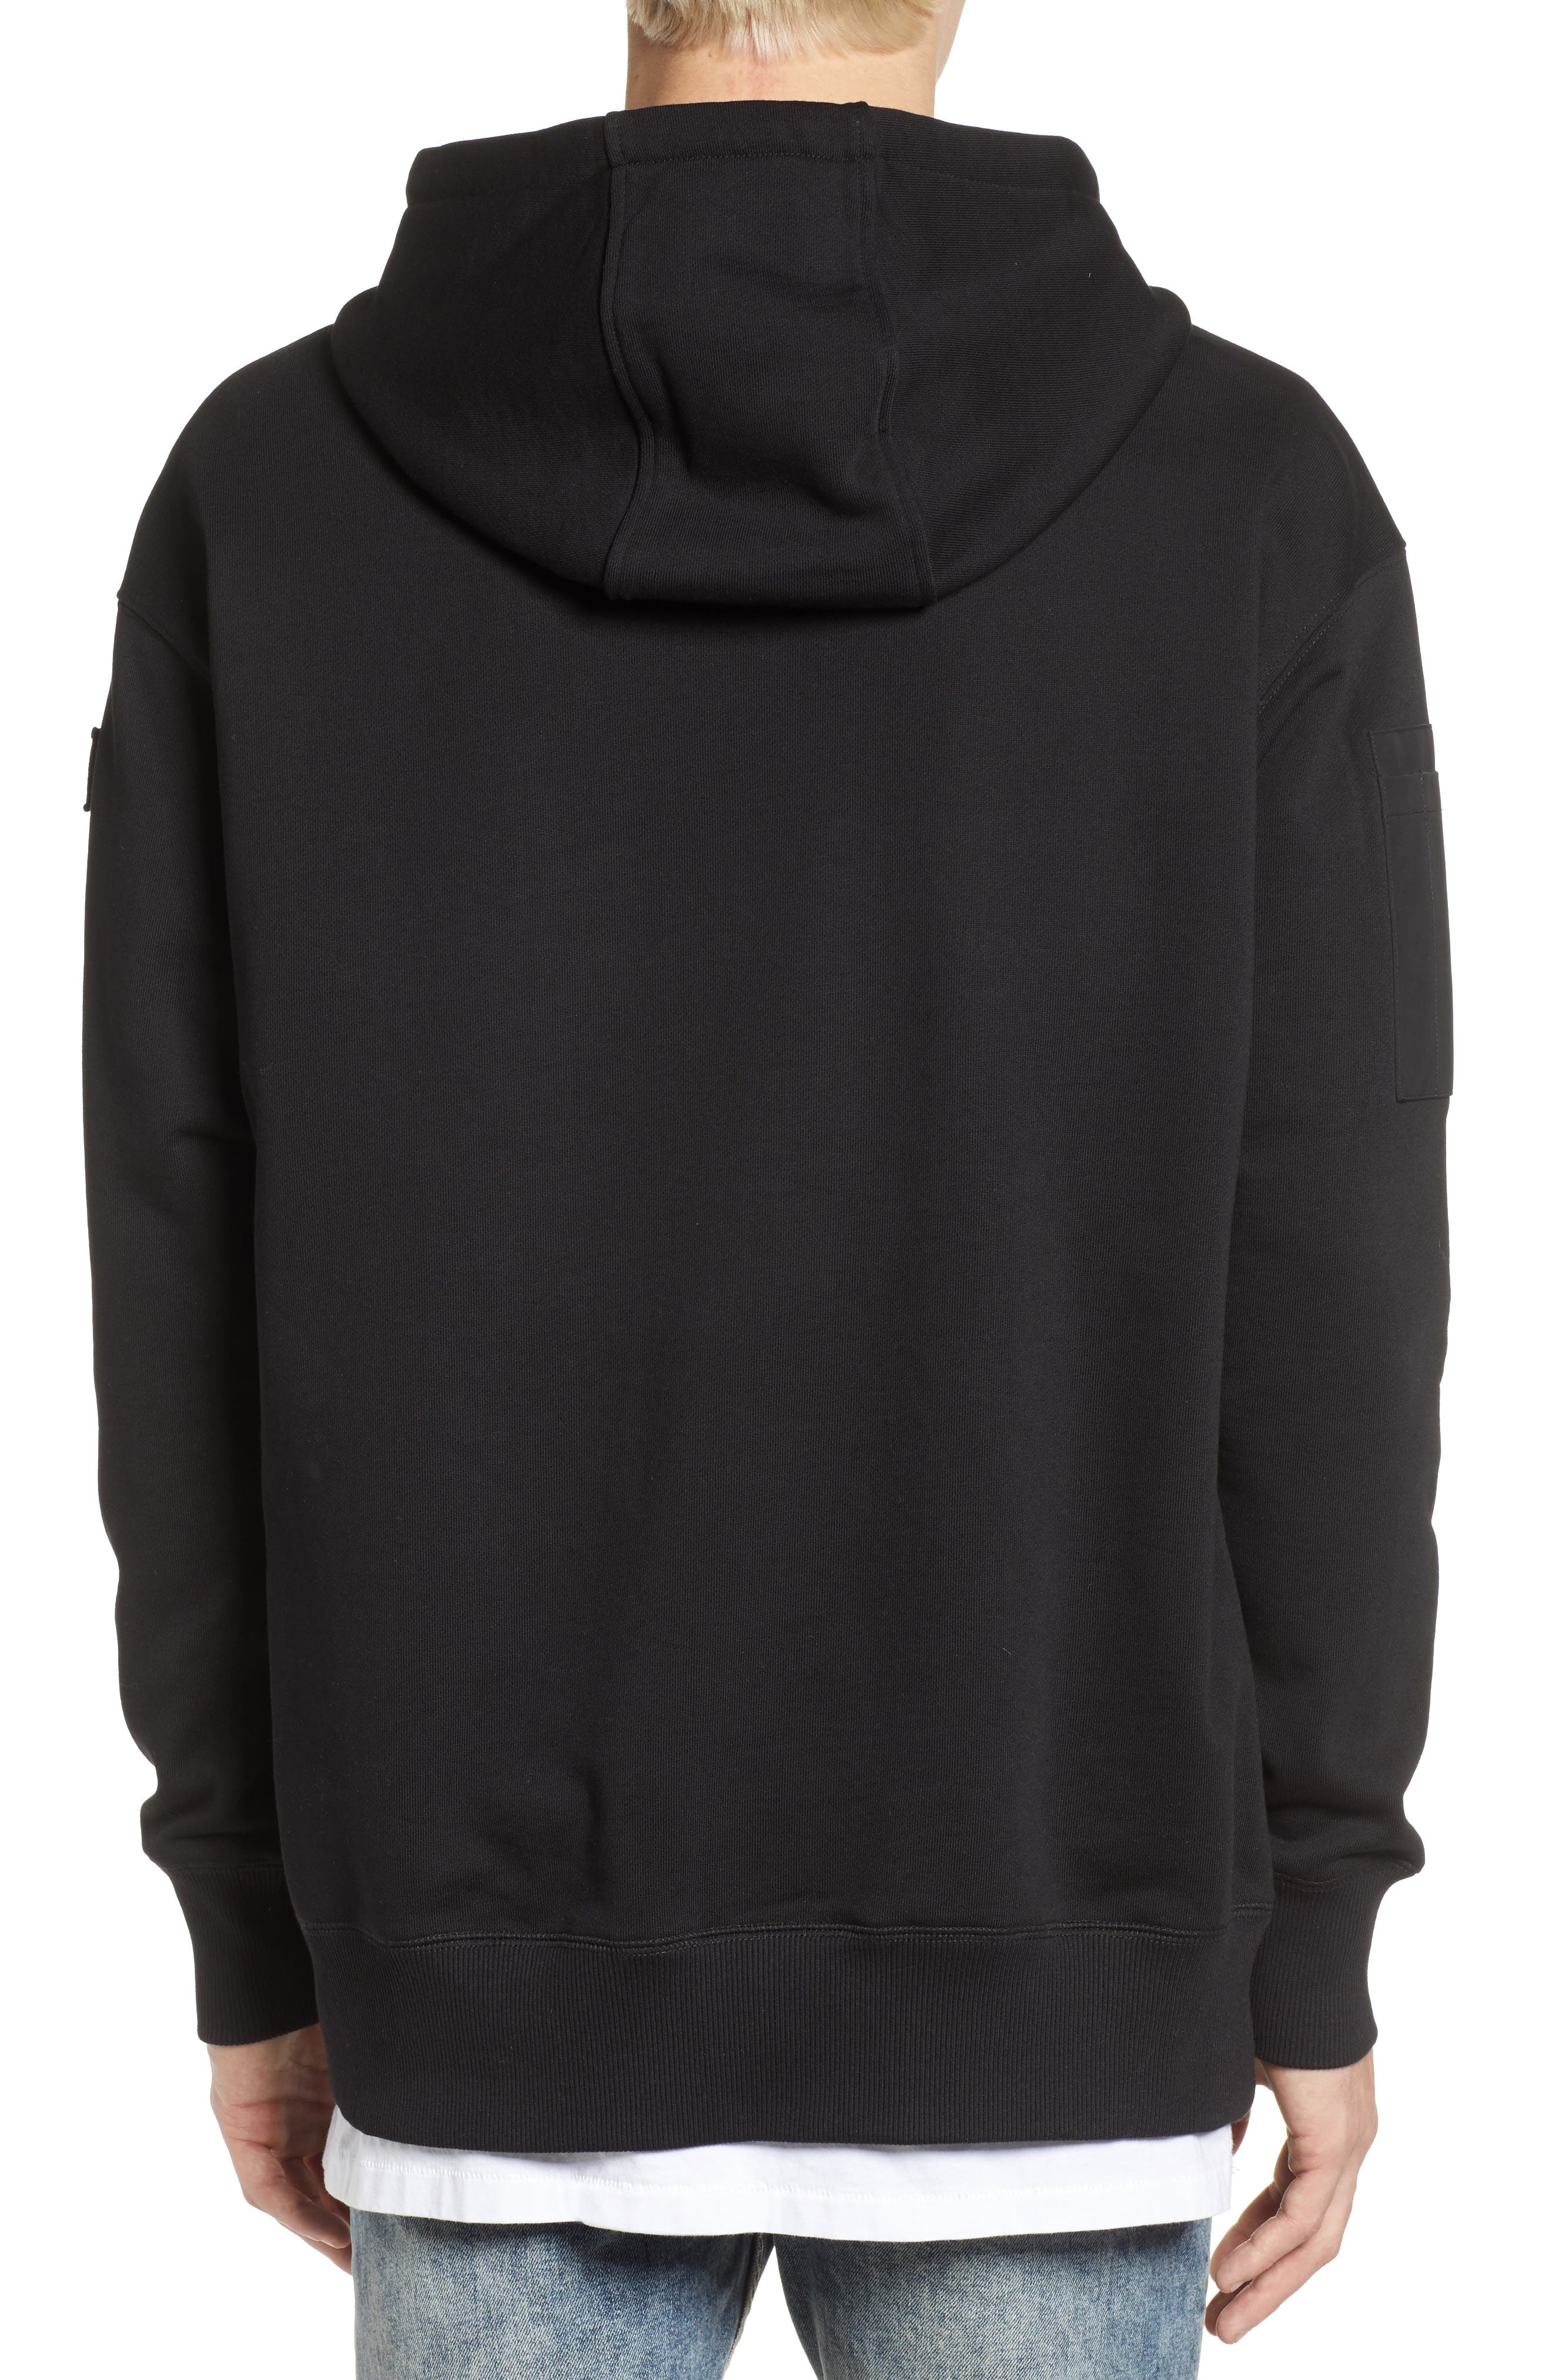 Northern Light Hoodie,                             Alternate thumbnail 2, color,                             001